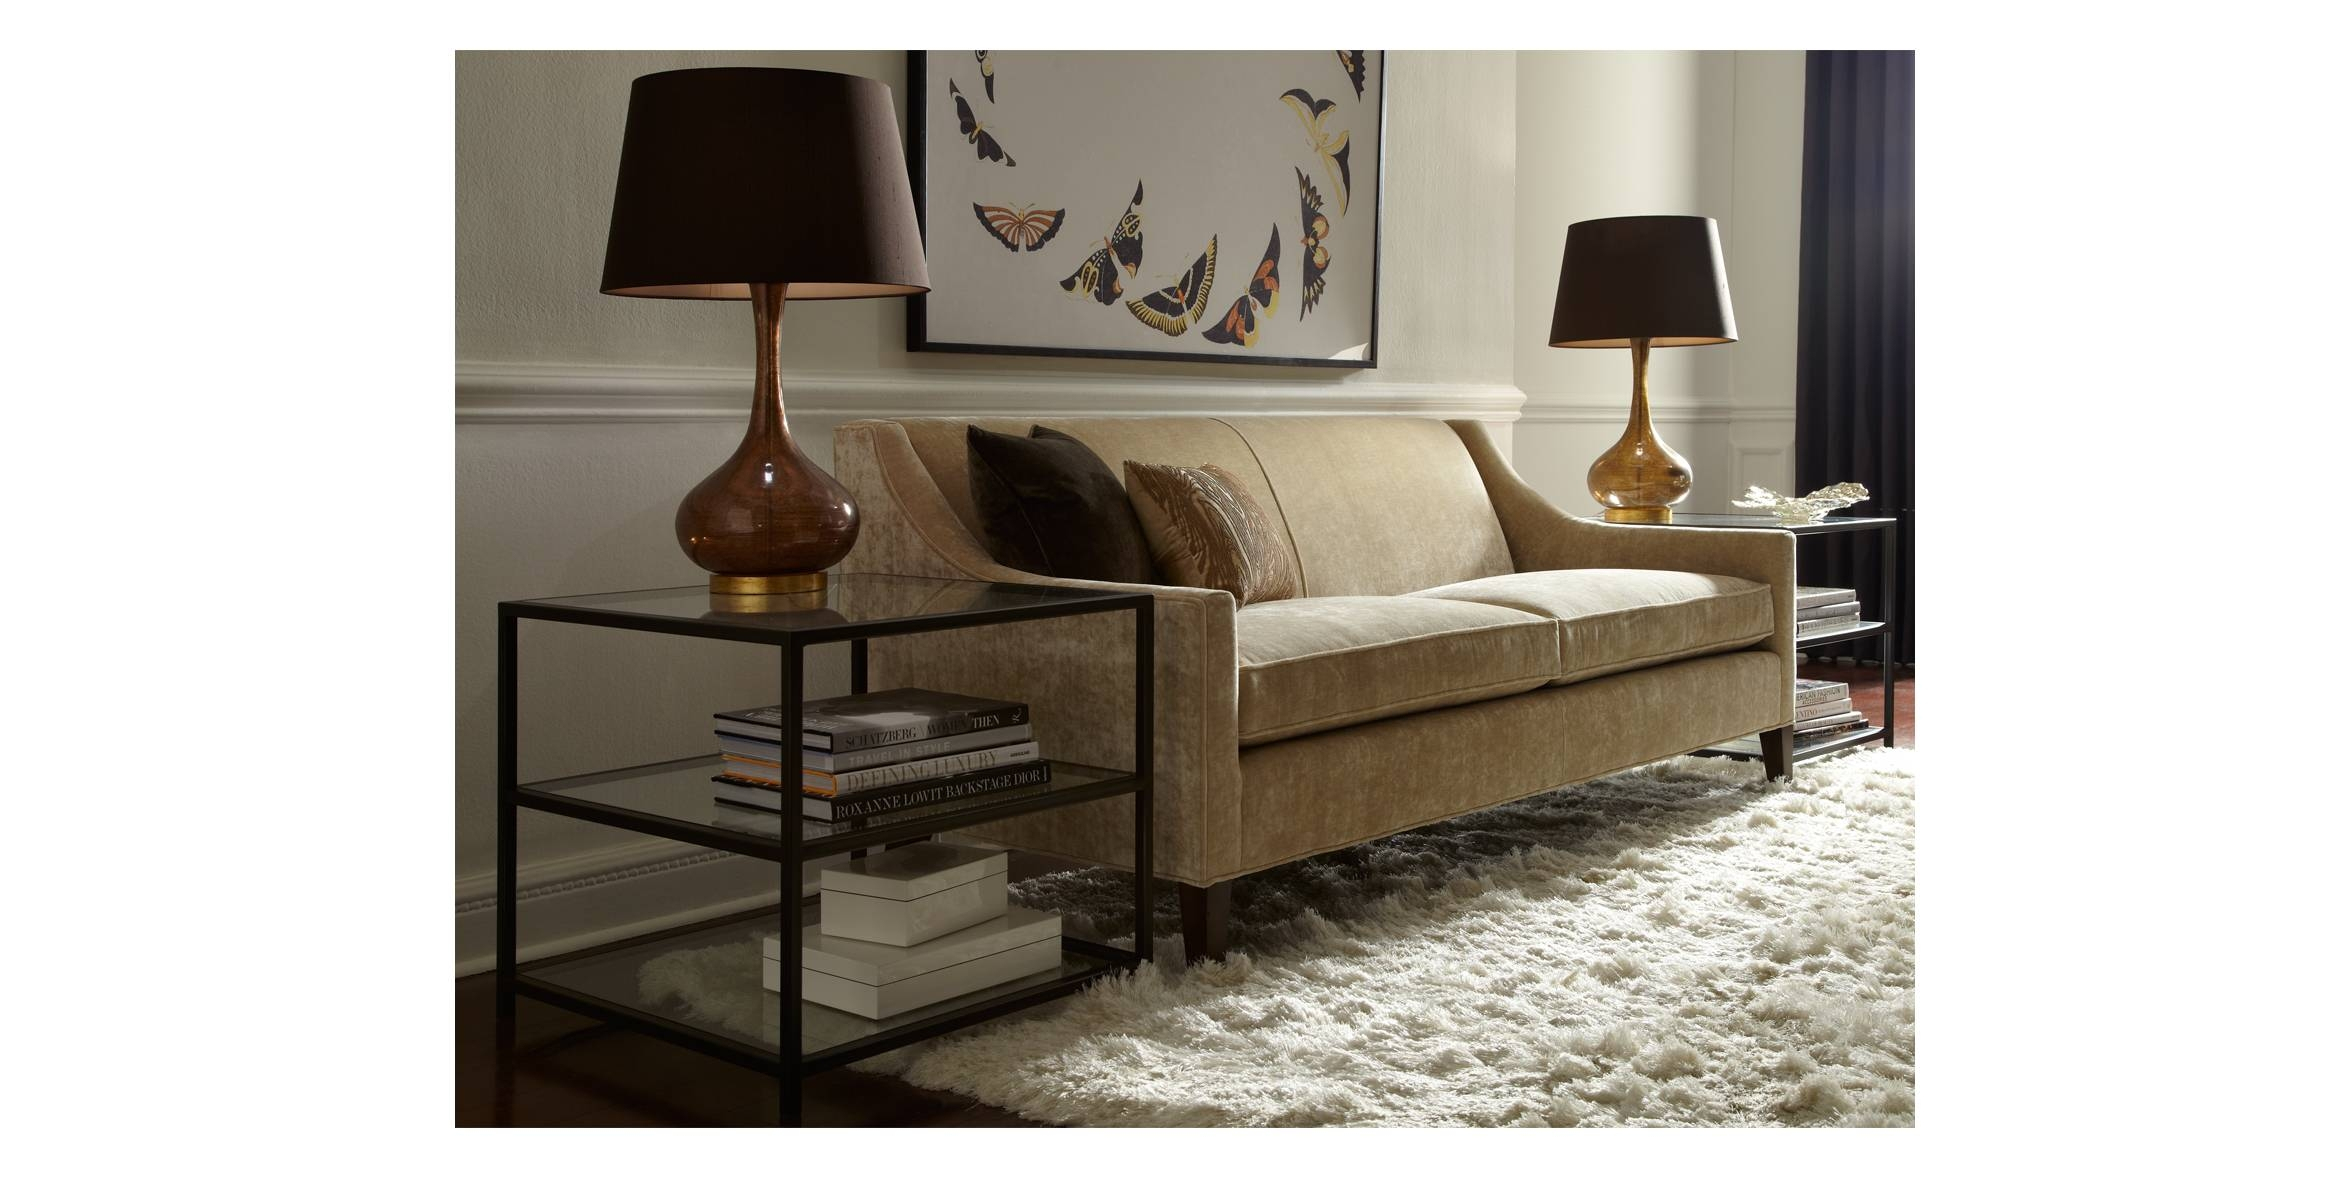 Mitchell Gold Sofa 35 With Mitchell Gold Sofa | Jinanhongyu inside Mitchell Gold Martin Sofas (Image 12 of 15)